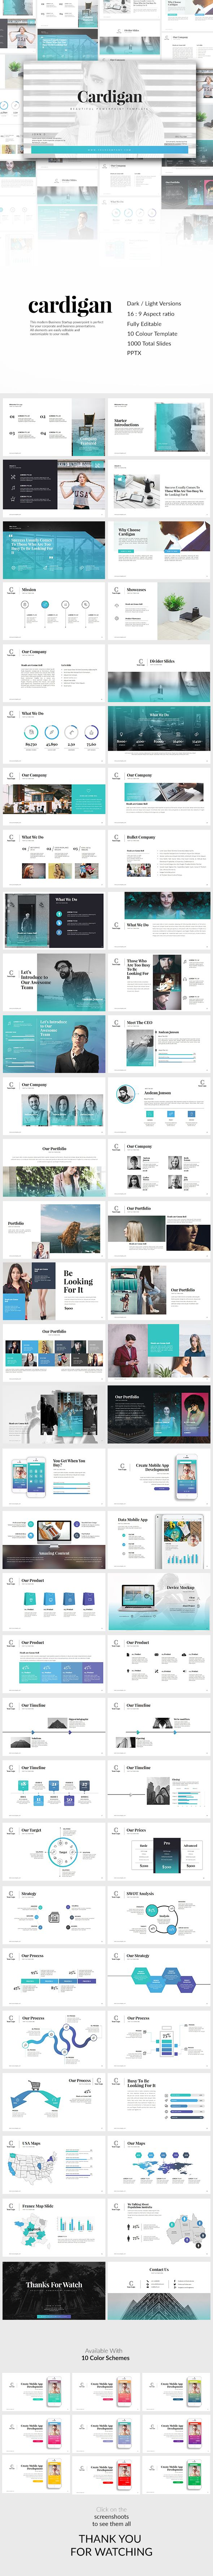 Cardigan PowerPoint Template — Powerpoint PPTX #showcase #infographic presentation • Download ➝ https://graphicriver.net/item/cardigan-powerpoint-template/19188812?ref=pxcr